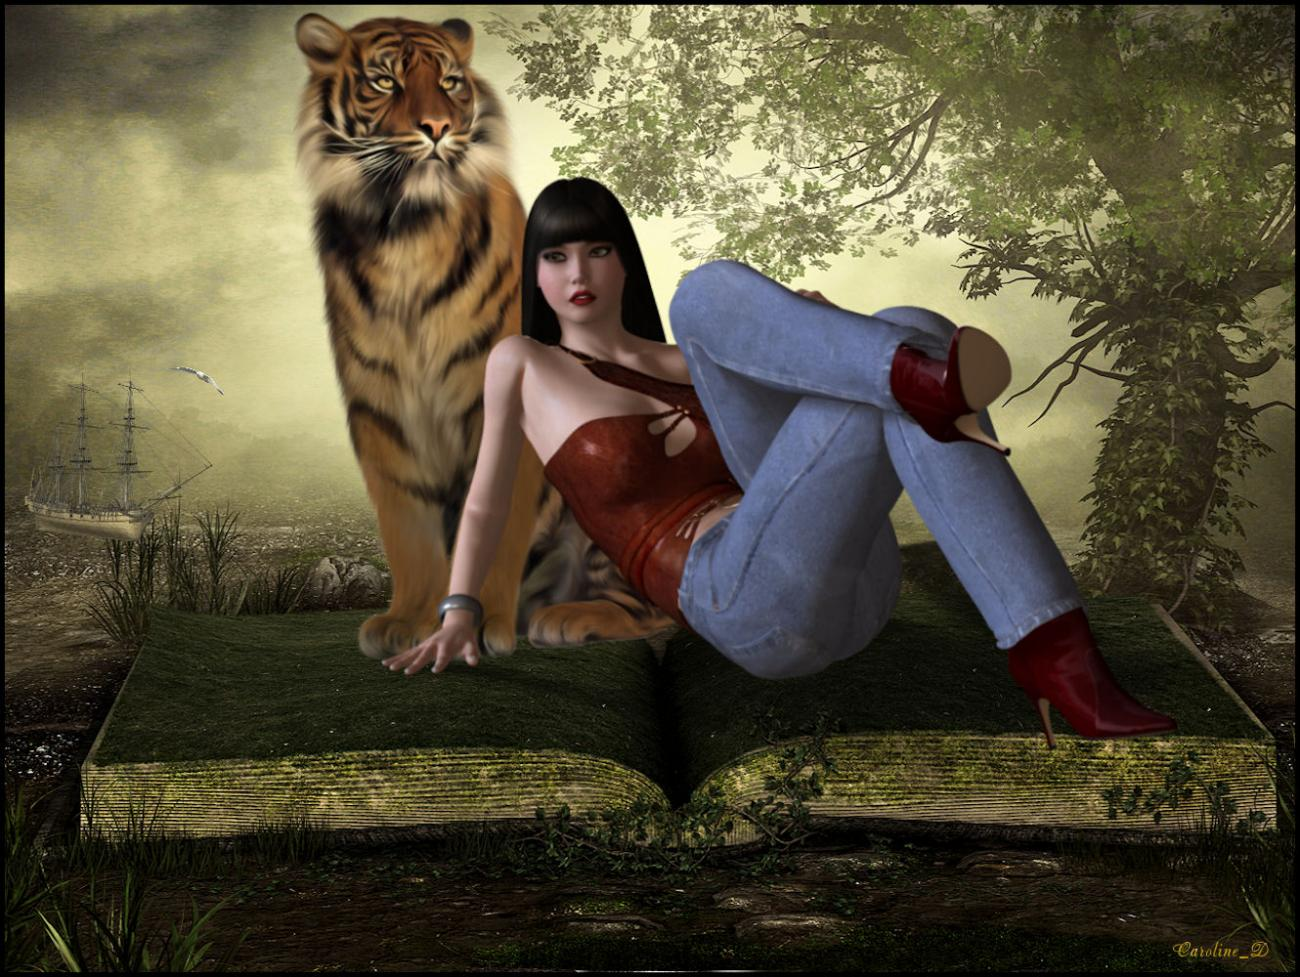 The tiger and the lady